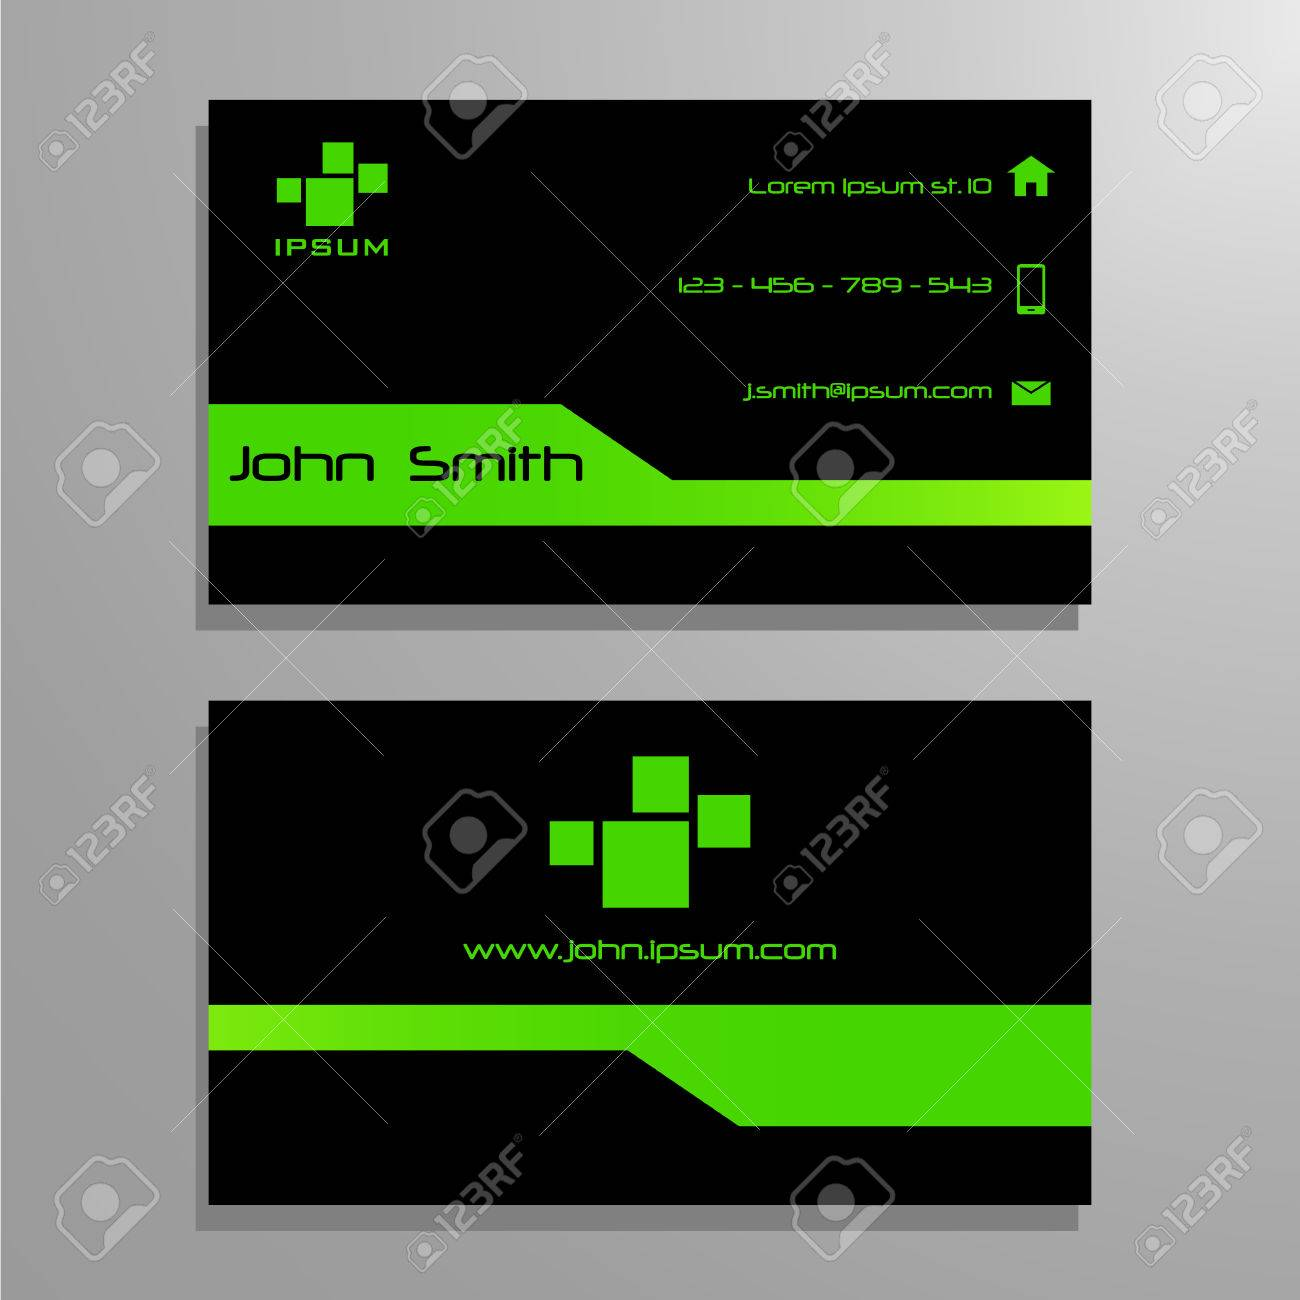 Business Visit Card Template - Green And Black Royalty Free Cliparts ...